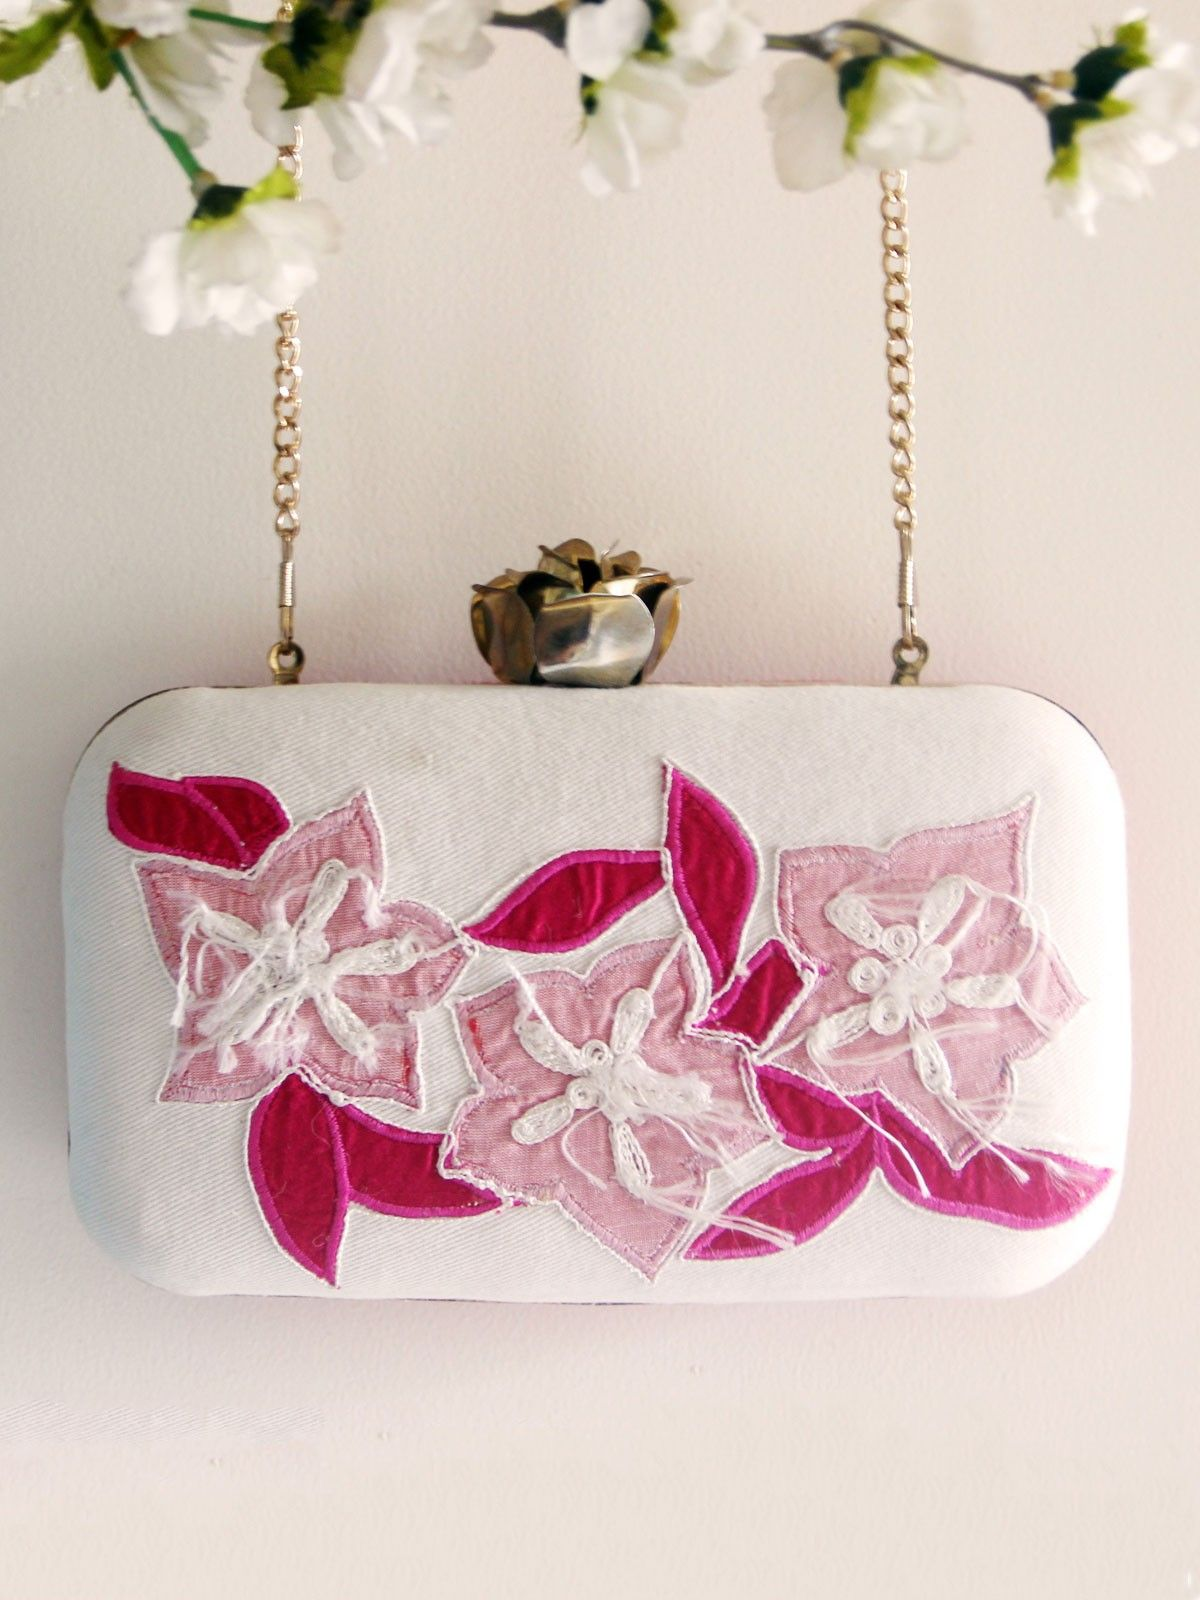 Pink & white cottn twi fabric Ikat metal frame women's applique clutch